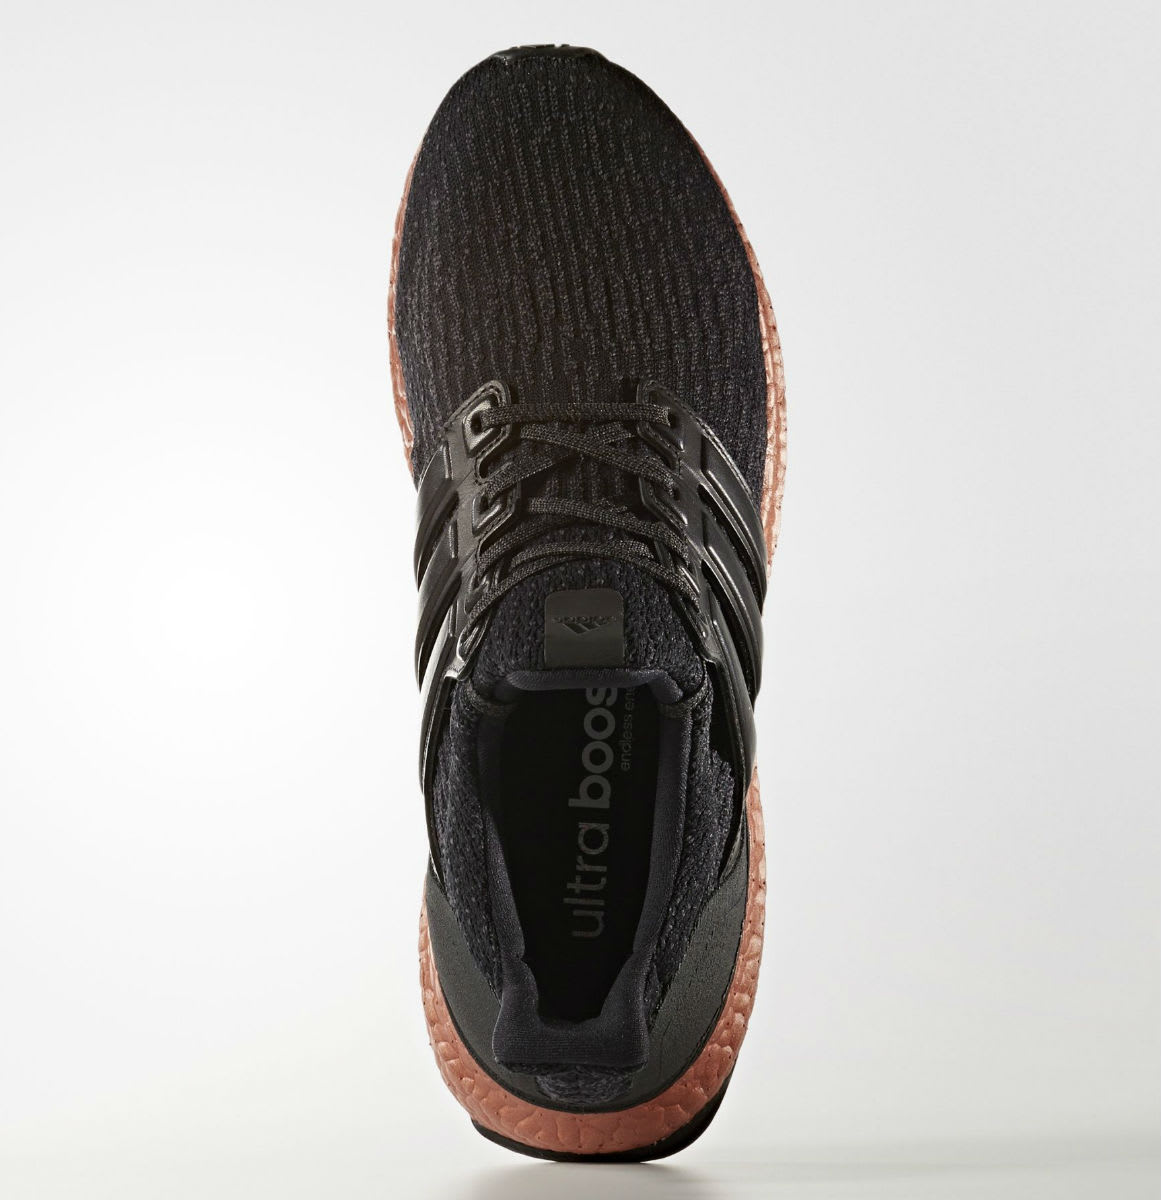 Adidas Ultra Boost 3.0 Black Bronze Sole Release Date Top